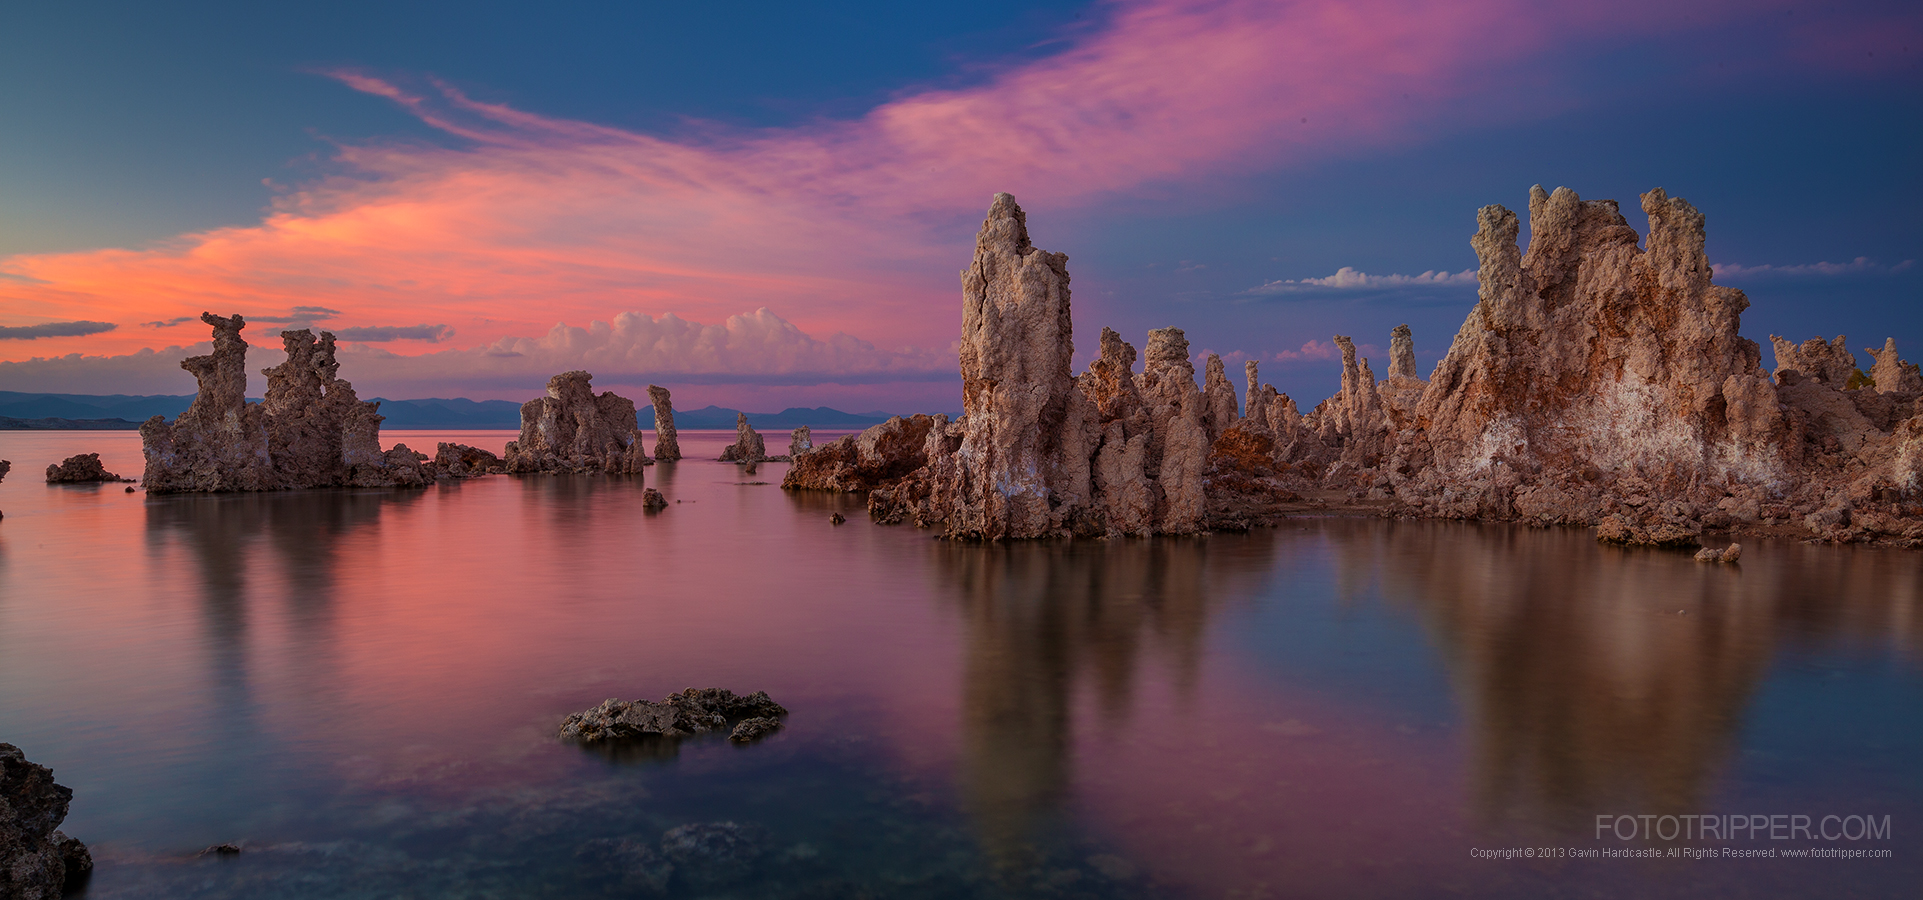 Mono Lake Photo Tips - California